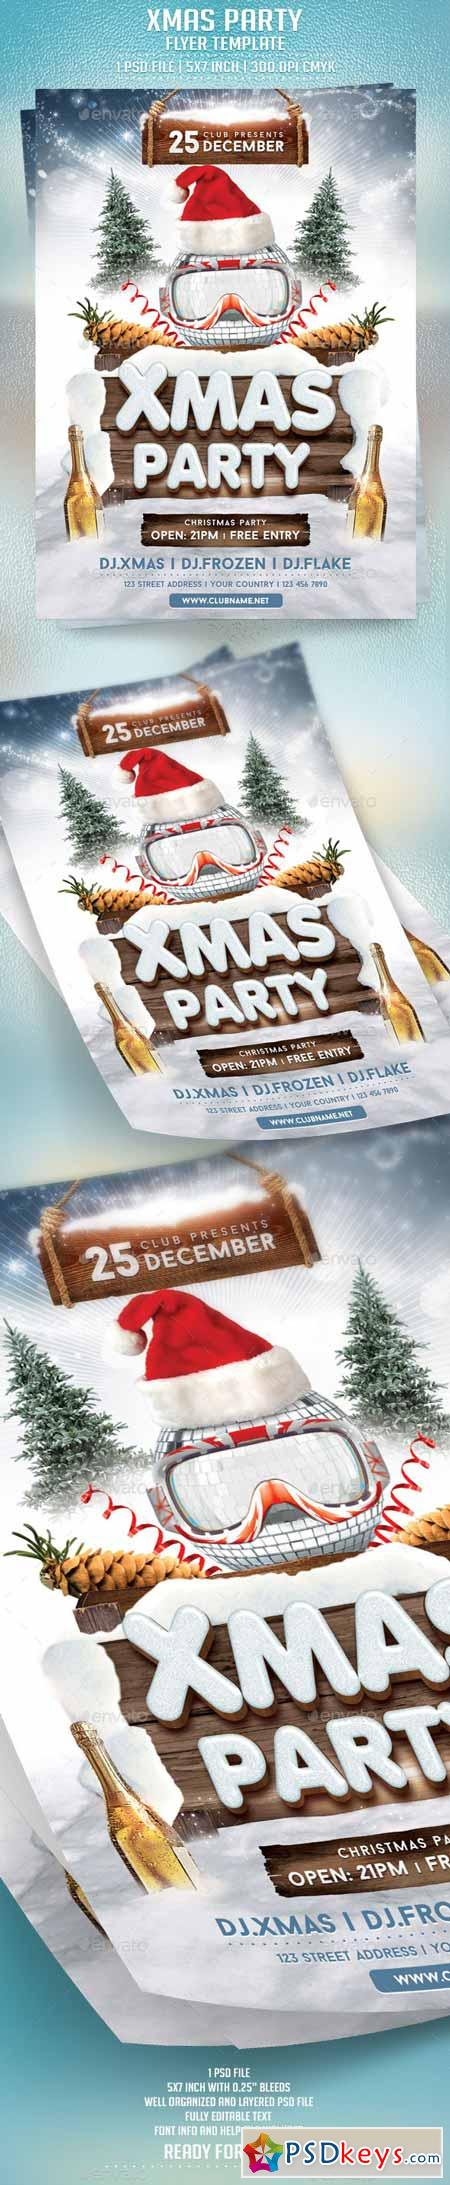 Xmas Party Flyer Template 9431140